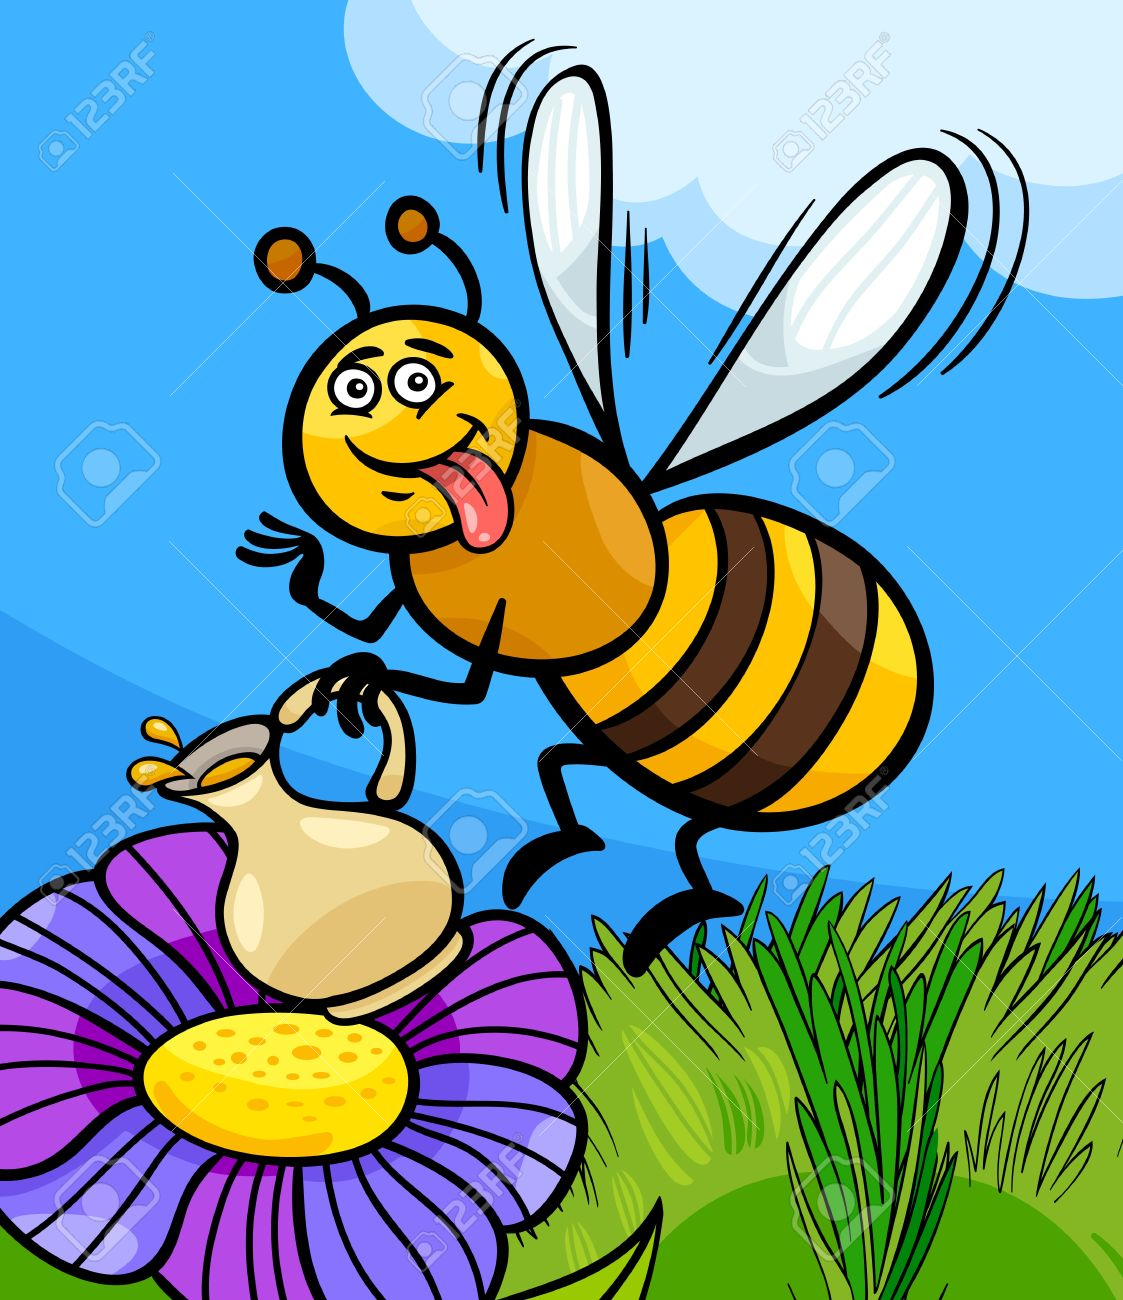 Cartoon Illustration Of Funny Bee On The Meadow With Pot Of Honey.